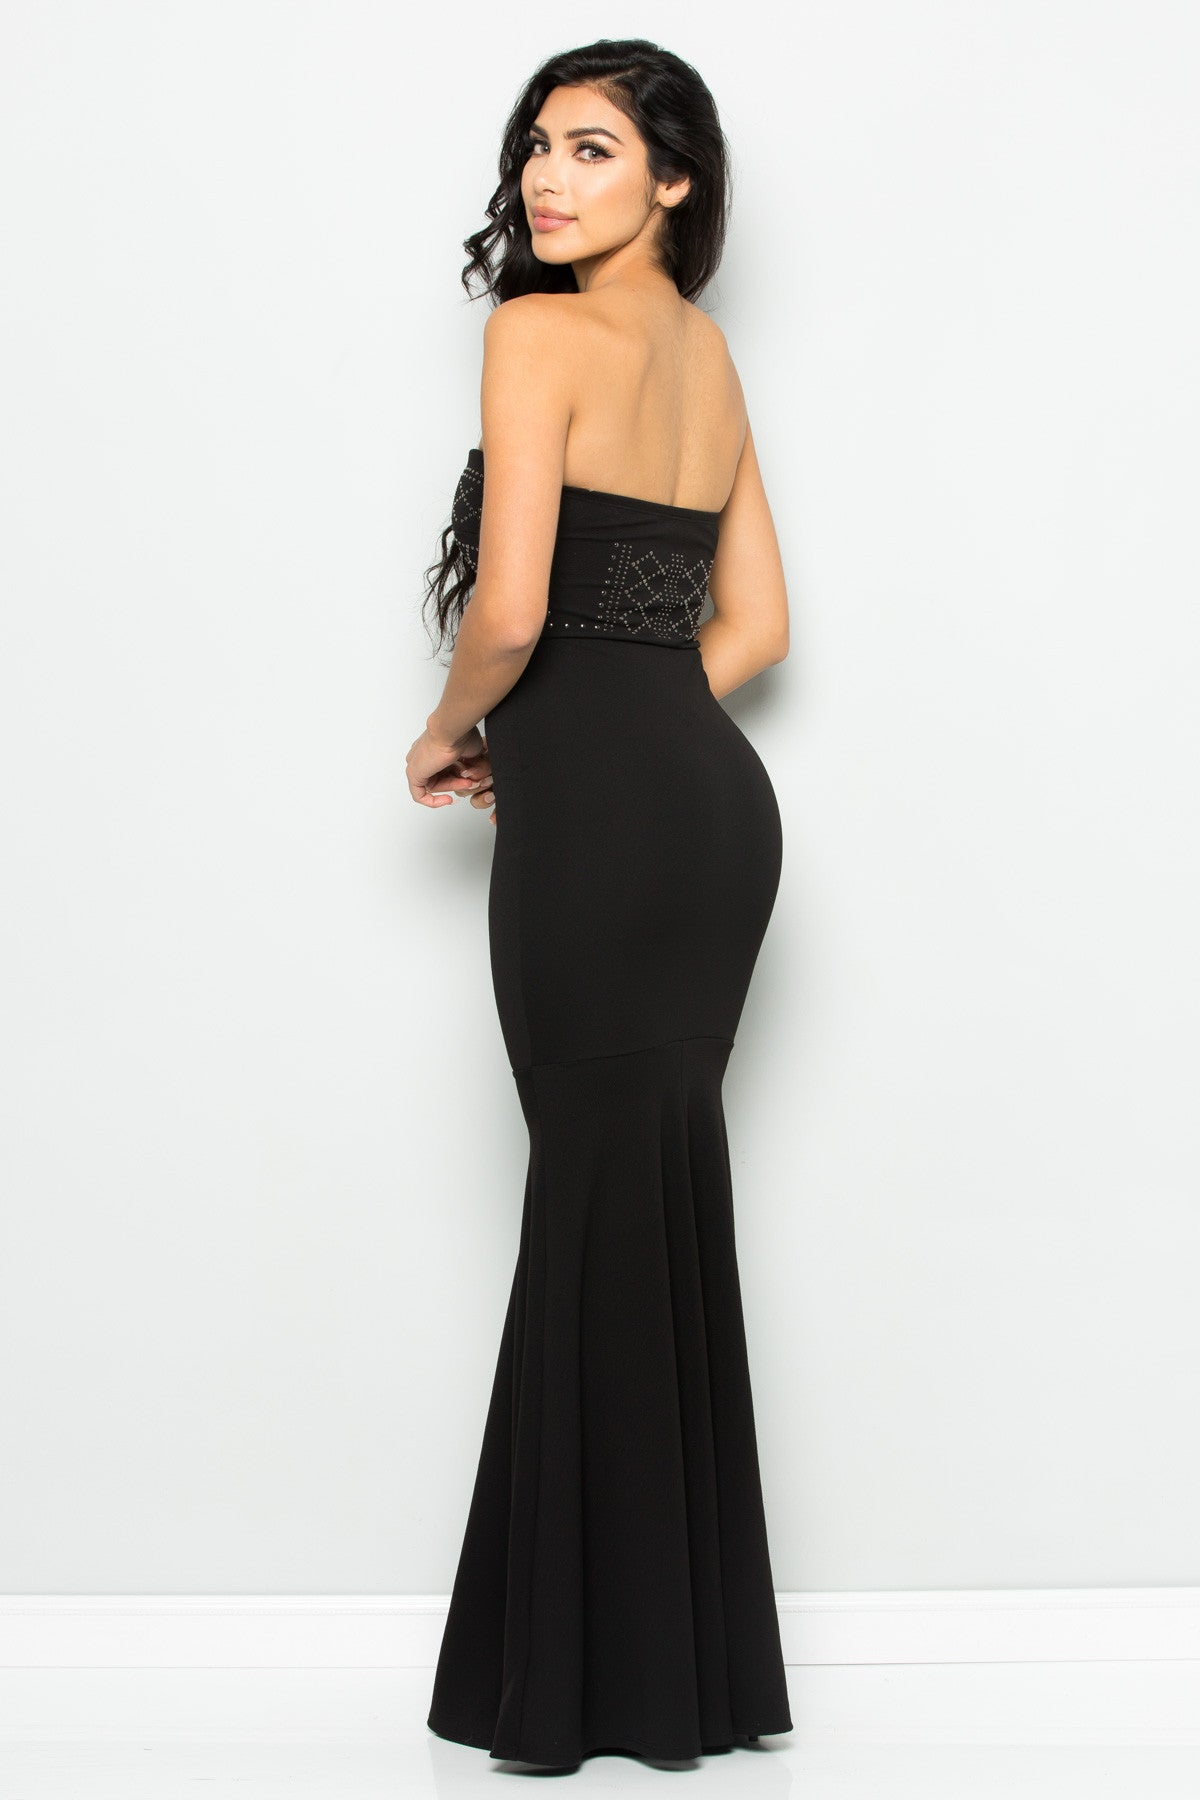 Beaded Sweetheart Mermaid Tail Gown in Black - Dresses - My Yuccie - 6